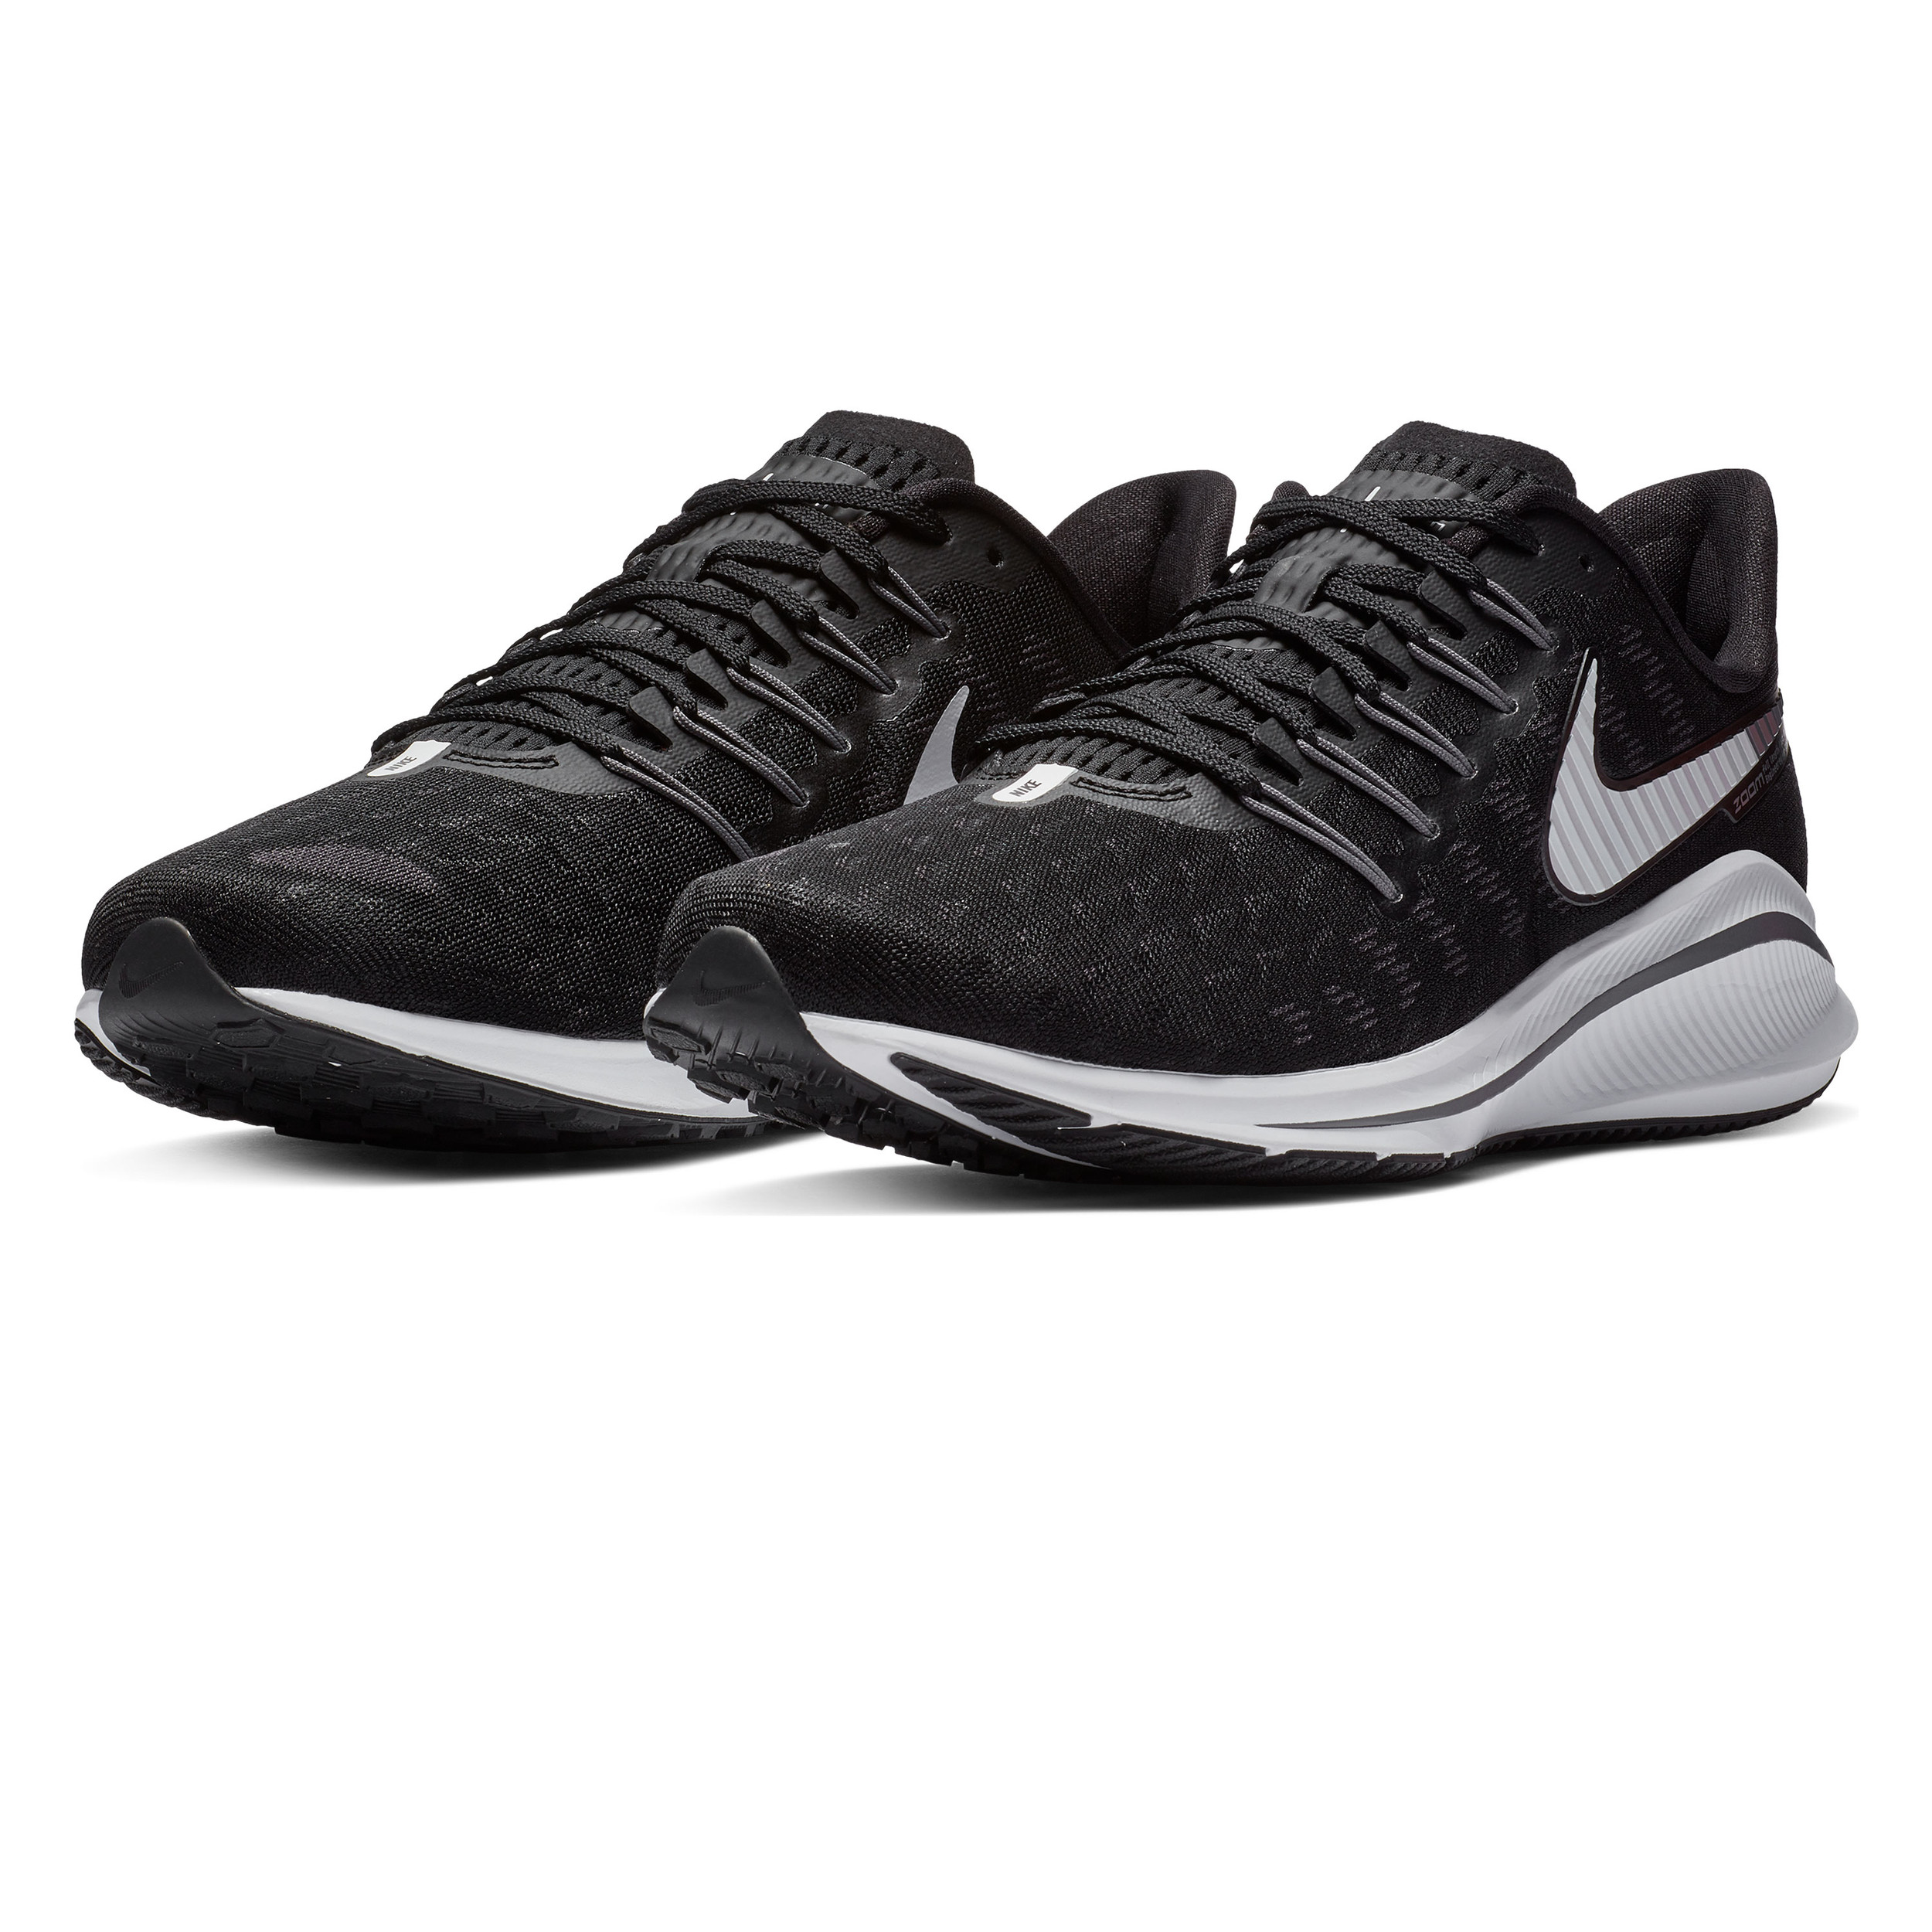 Nike Air Zoom Vomero 14 Running Shoes - SP20